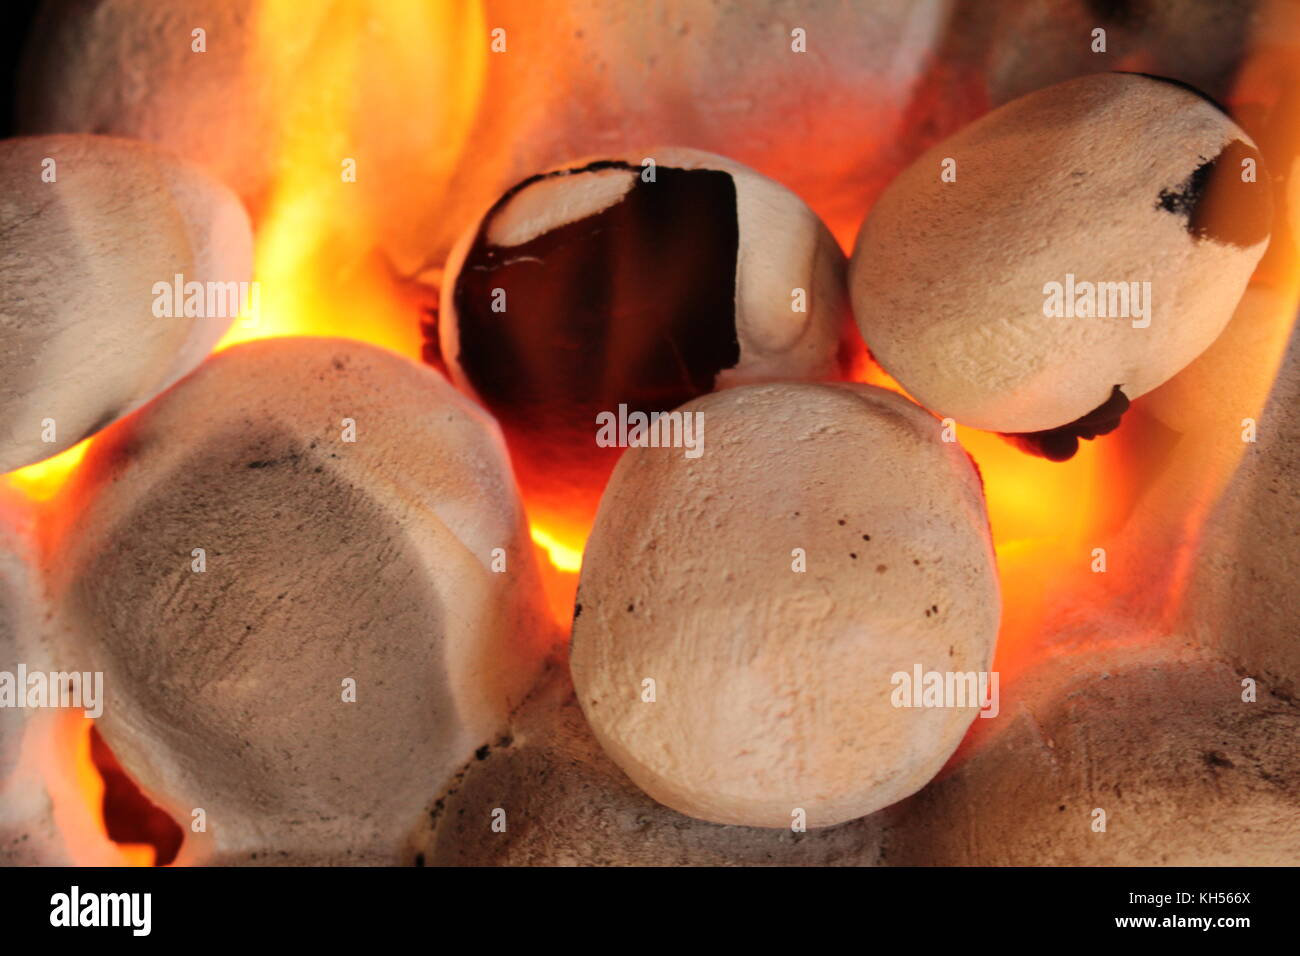 Close up of gas fire coals with yellow orange flames, glowing orange, and with soot on two of coals. - Stock Image